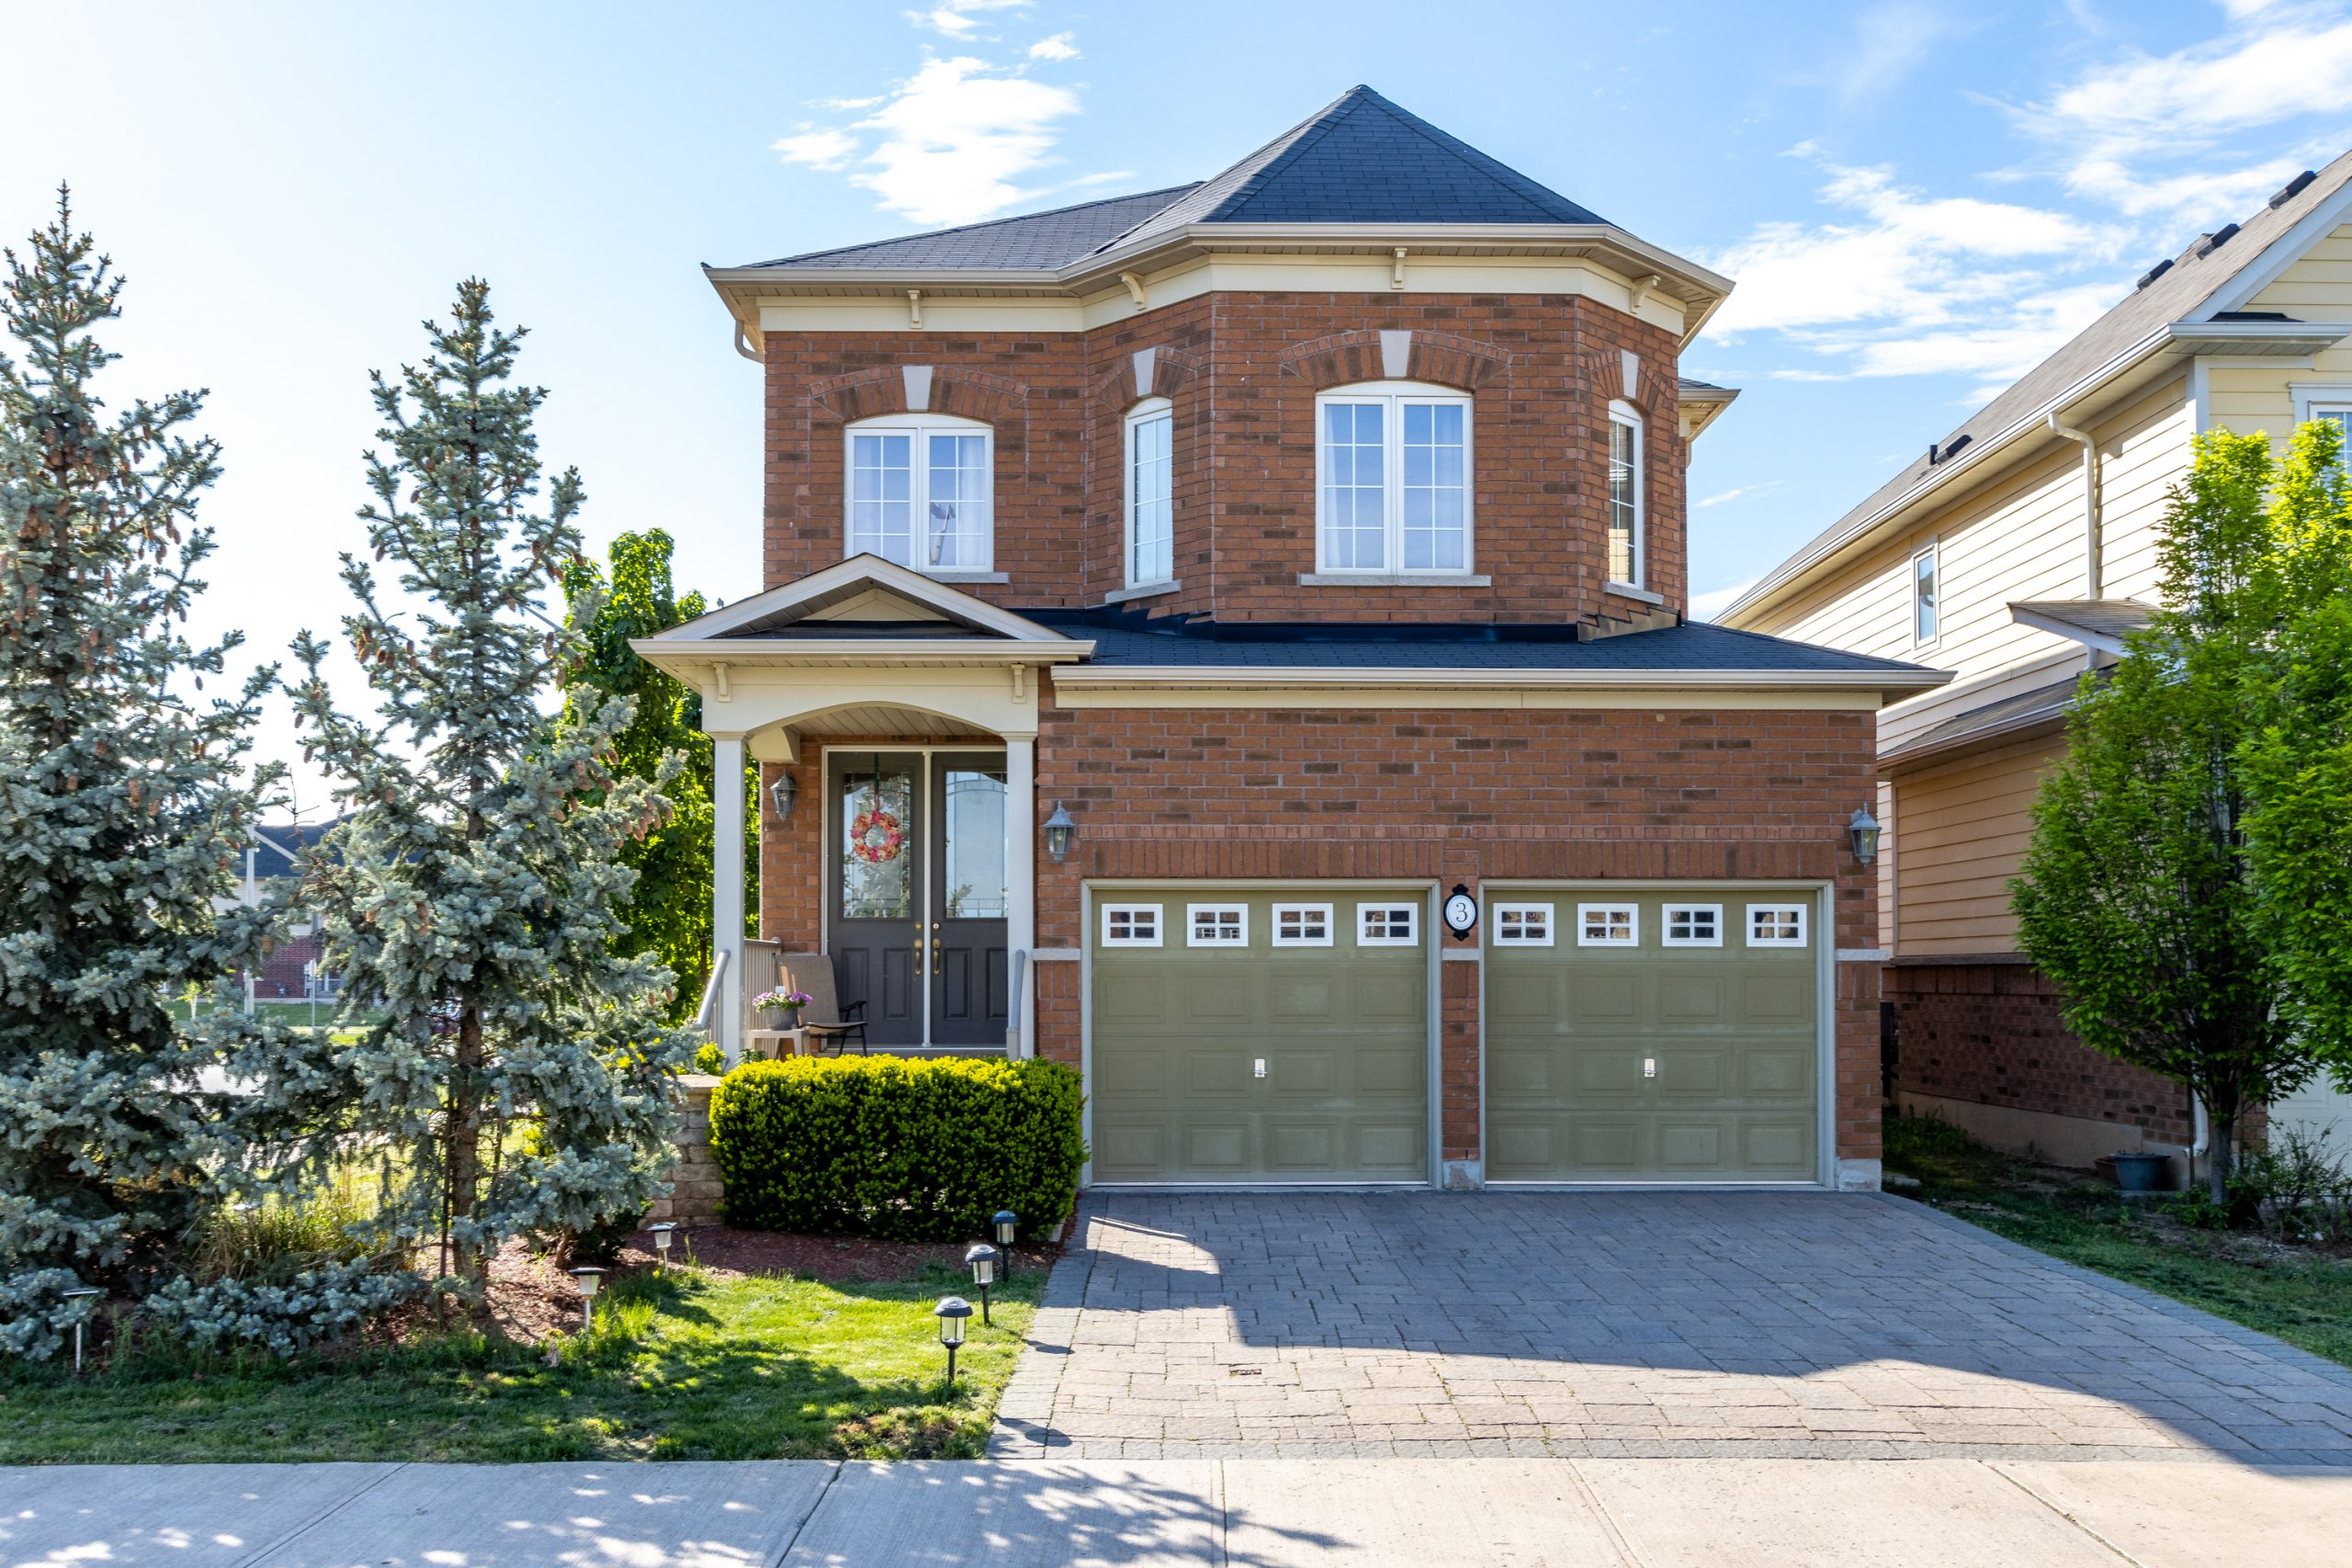 Property image for 3 White Ash Road, Thorold